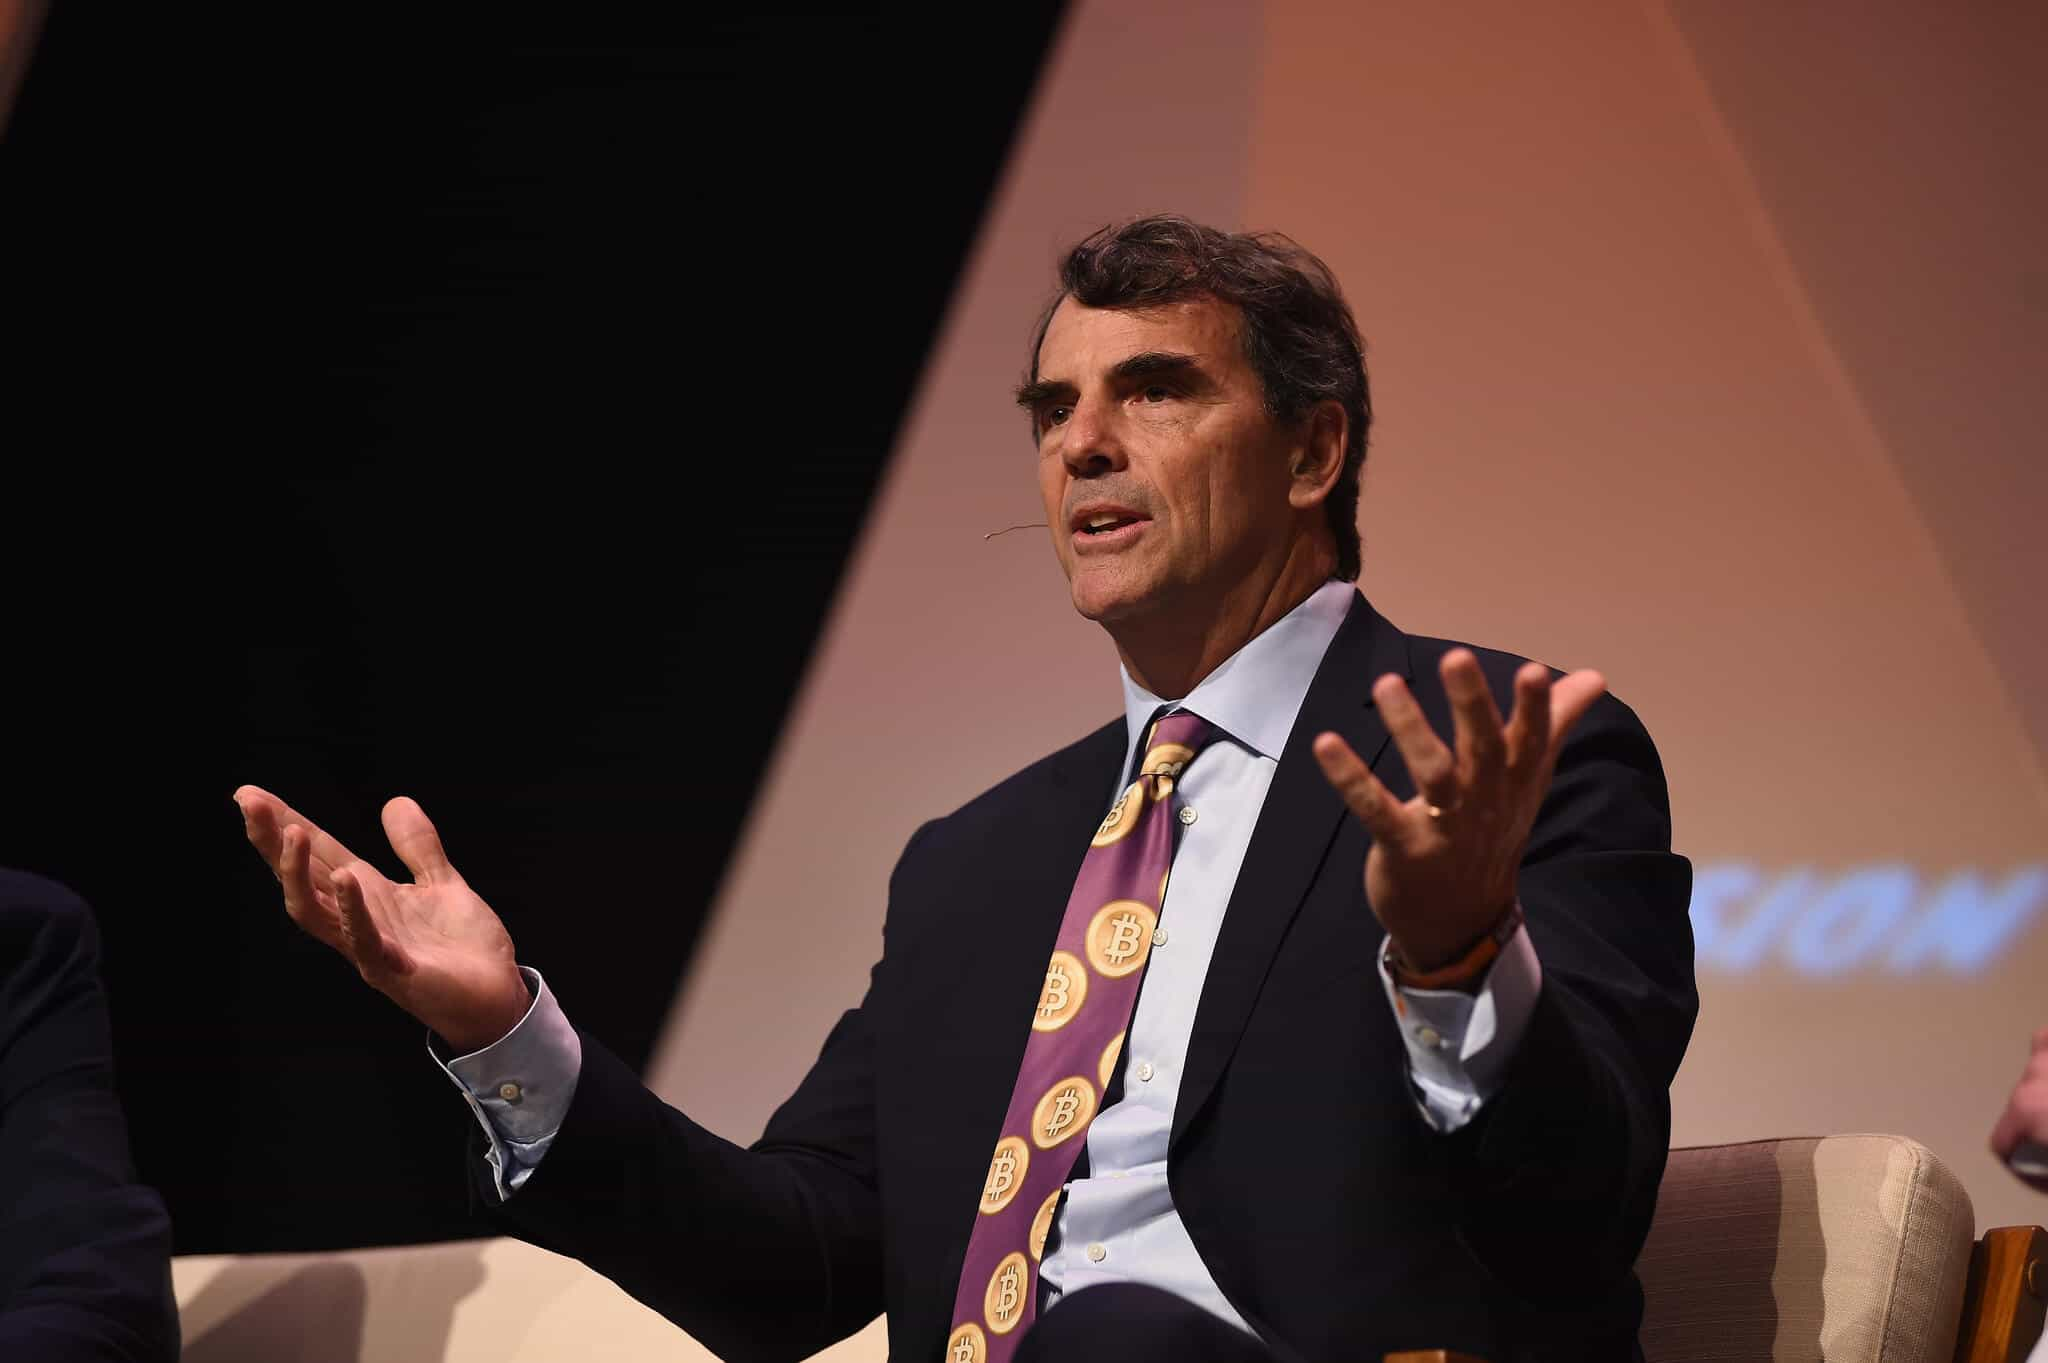 Facebook Cryptocurrency Project Tim Draper To Invest